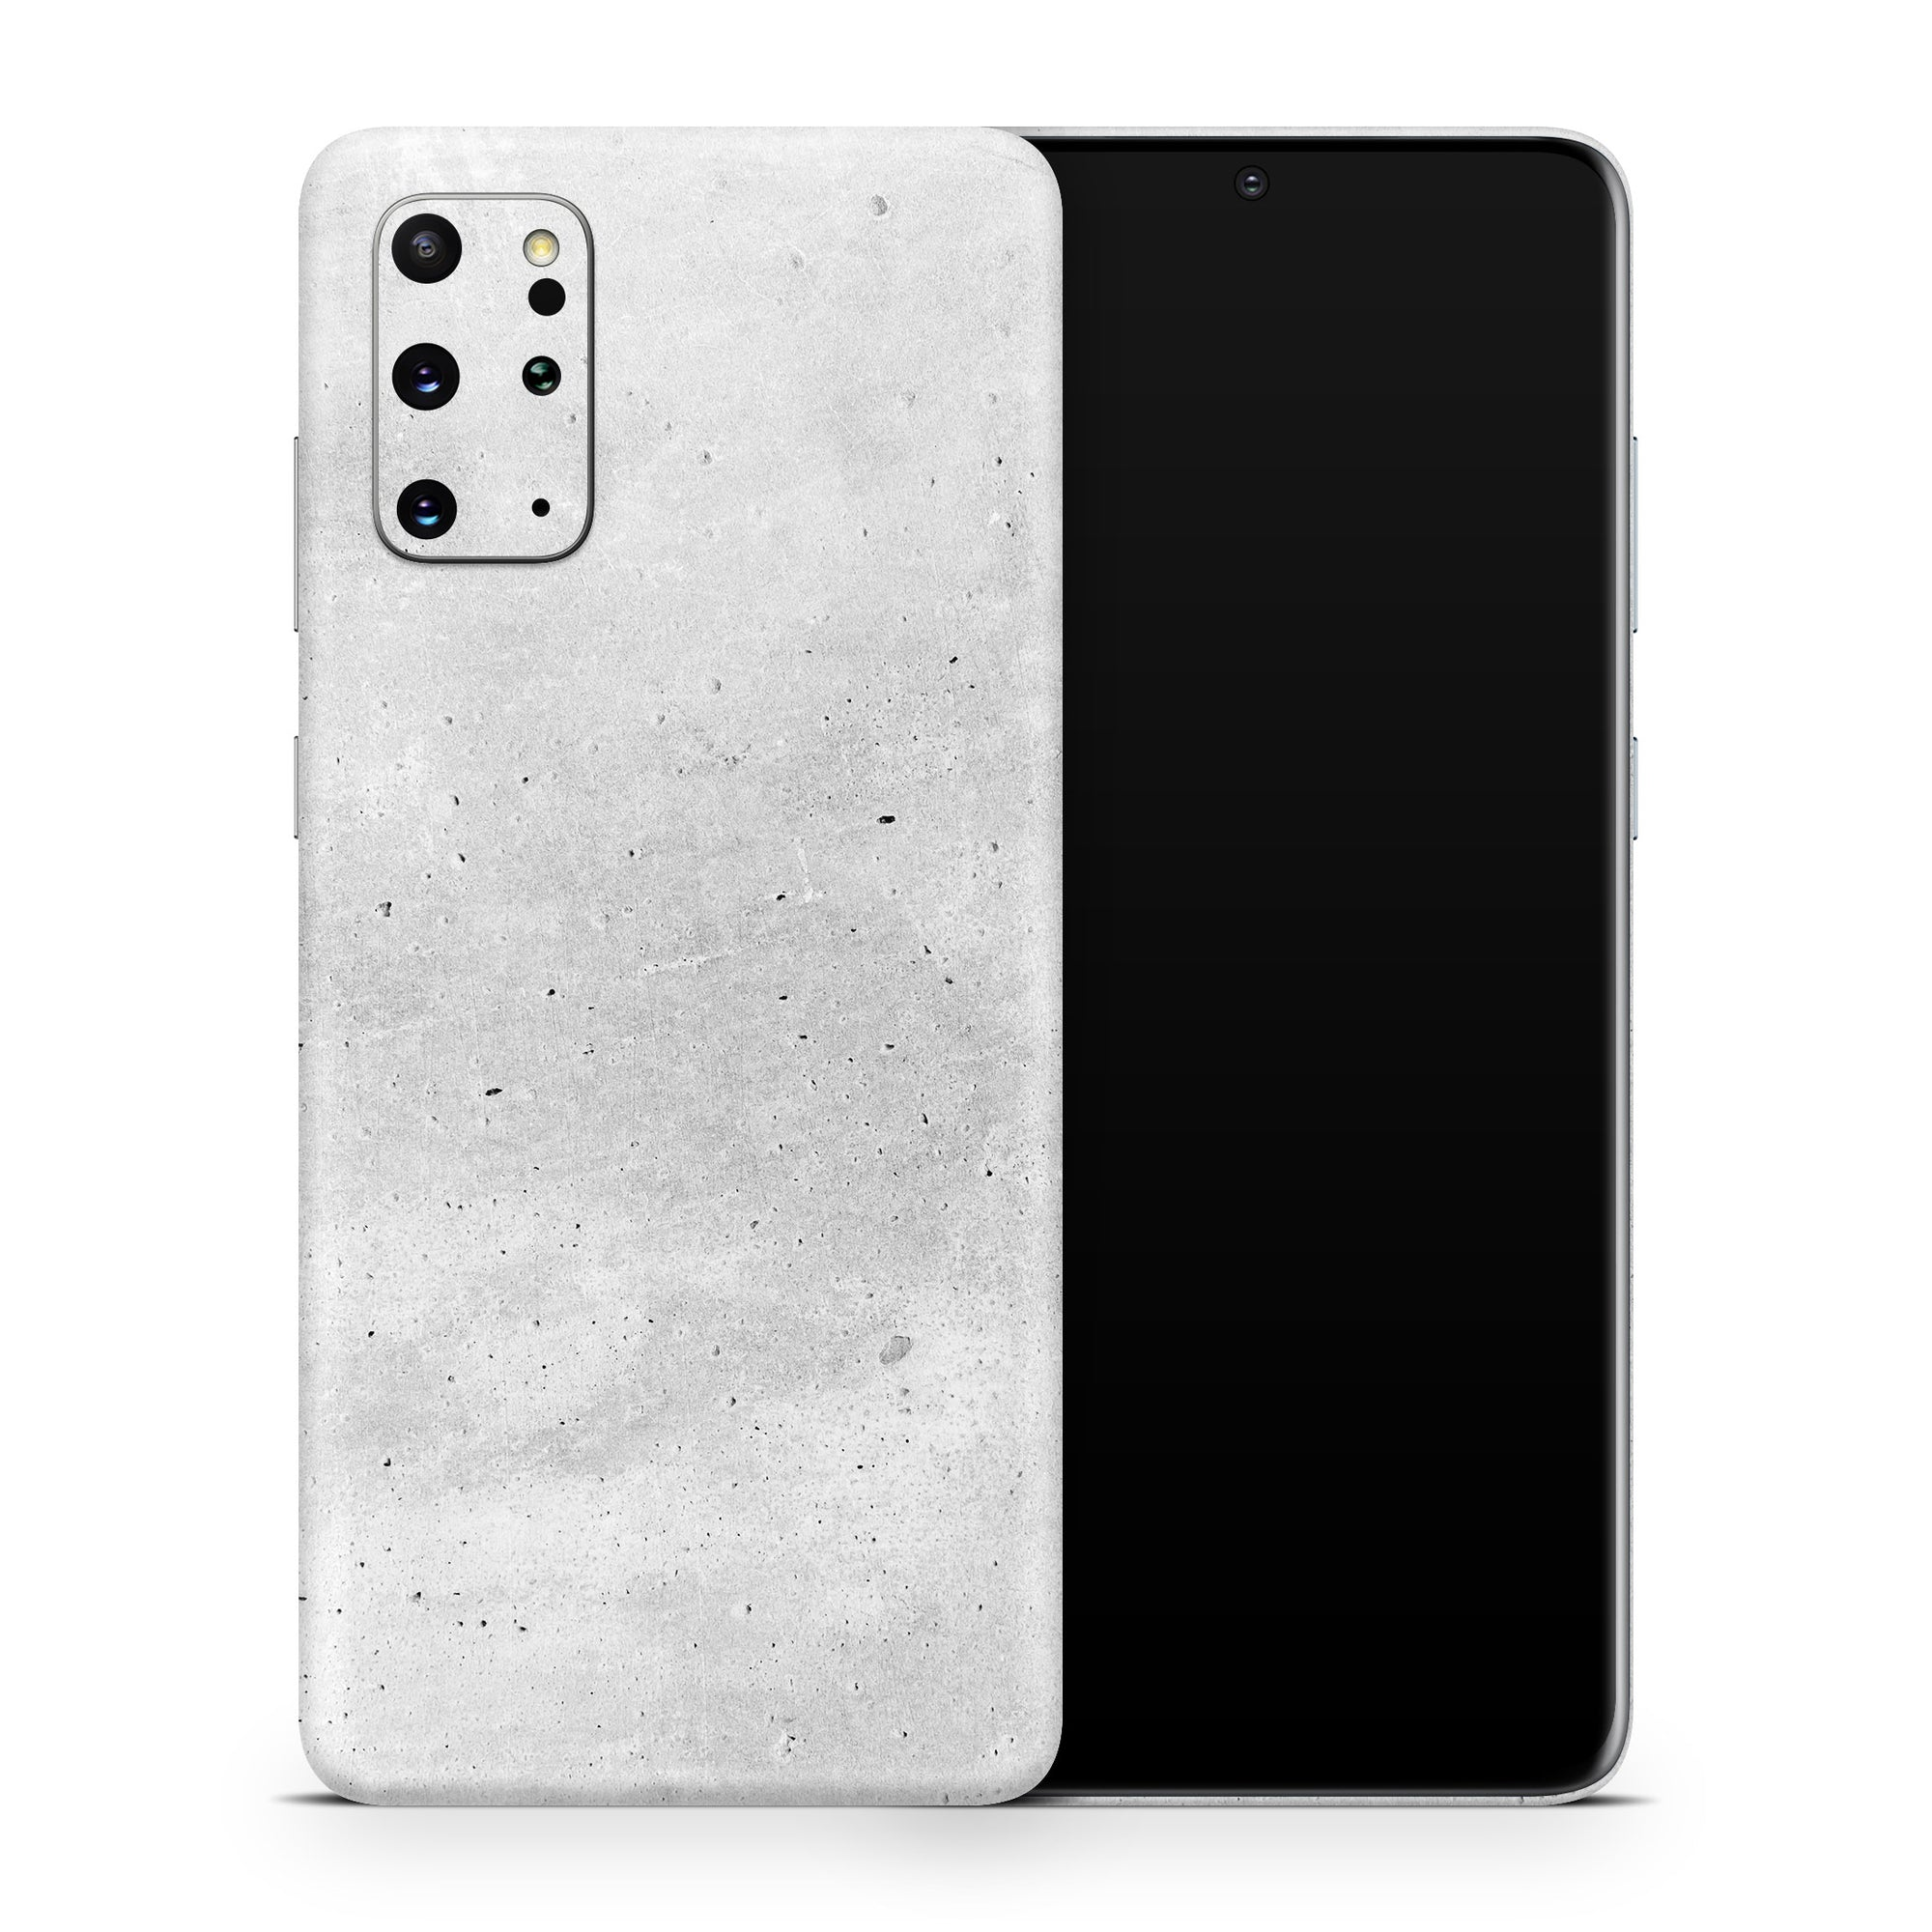 Concrete Galaxy S20 Plus Skin + Case-Uniqfind